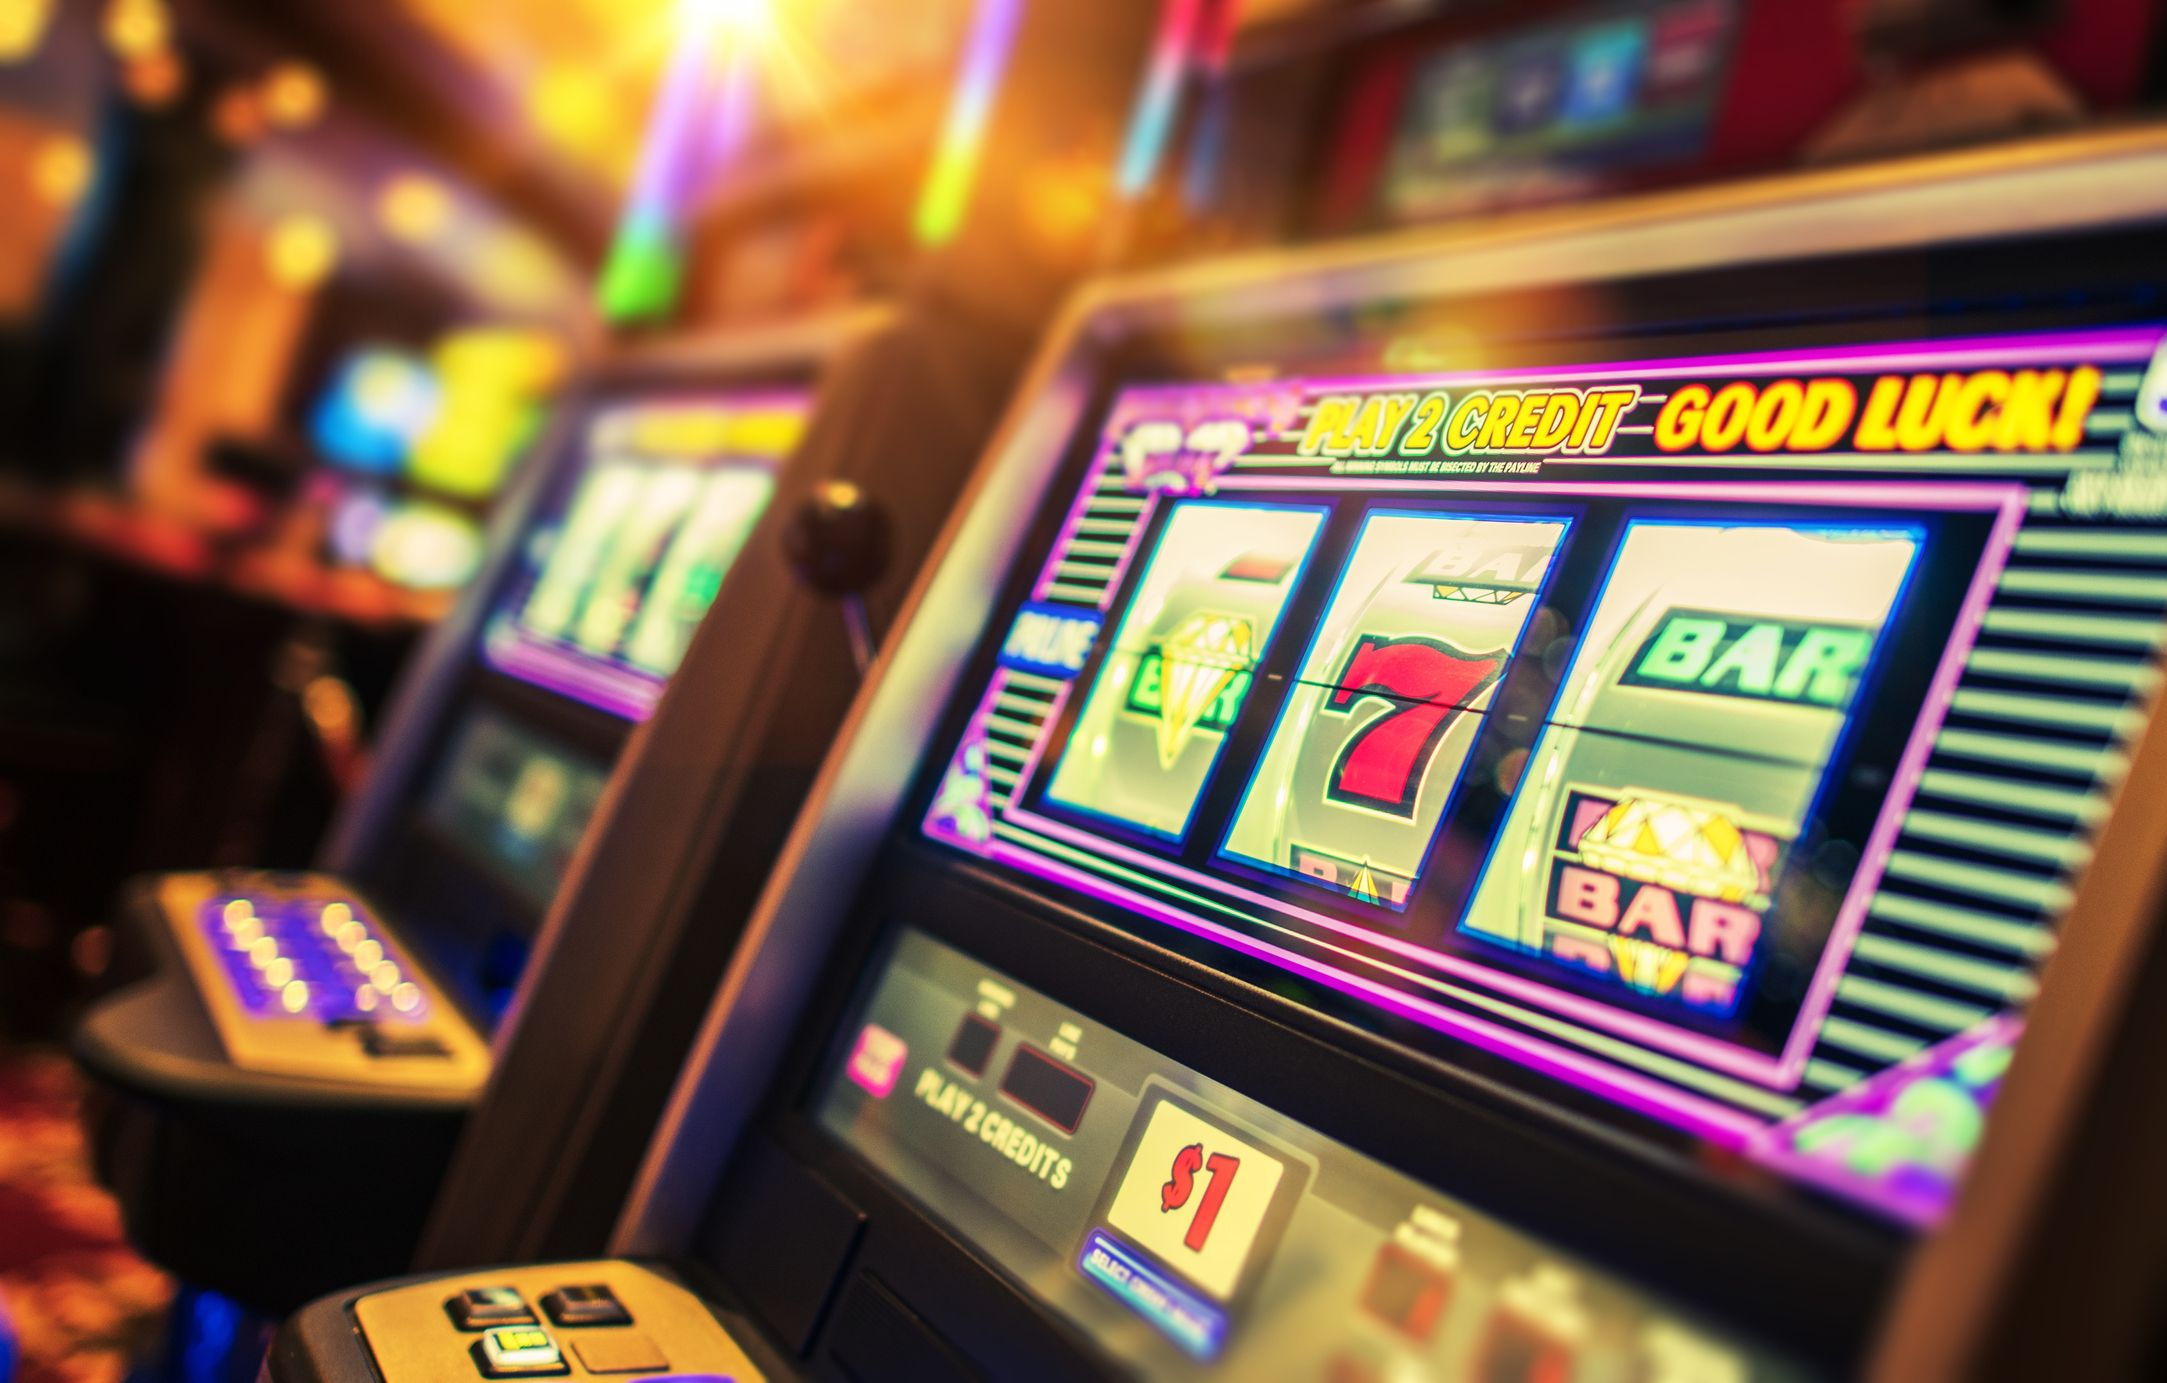 Playing Slot Machines Could Be Too Much of a Gamble